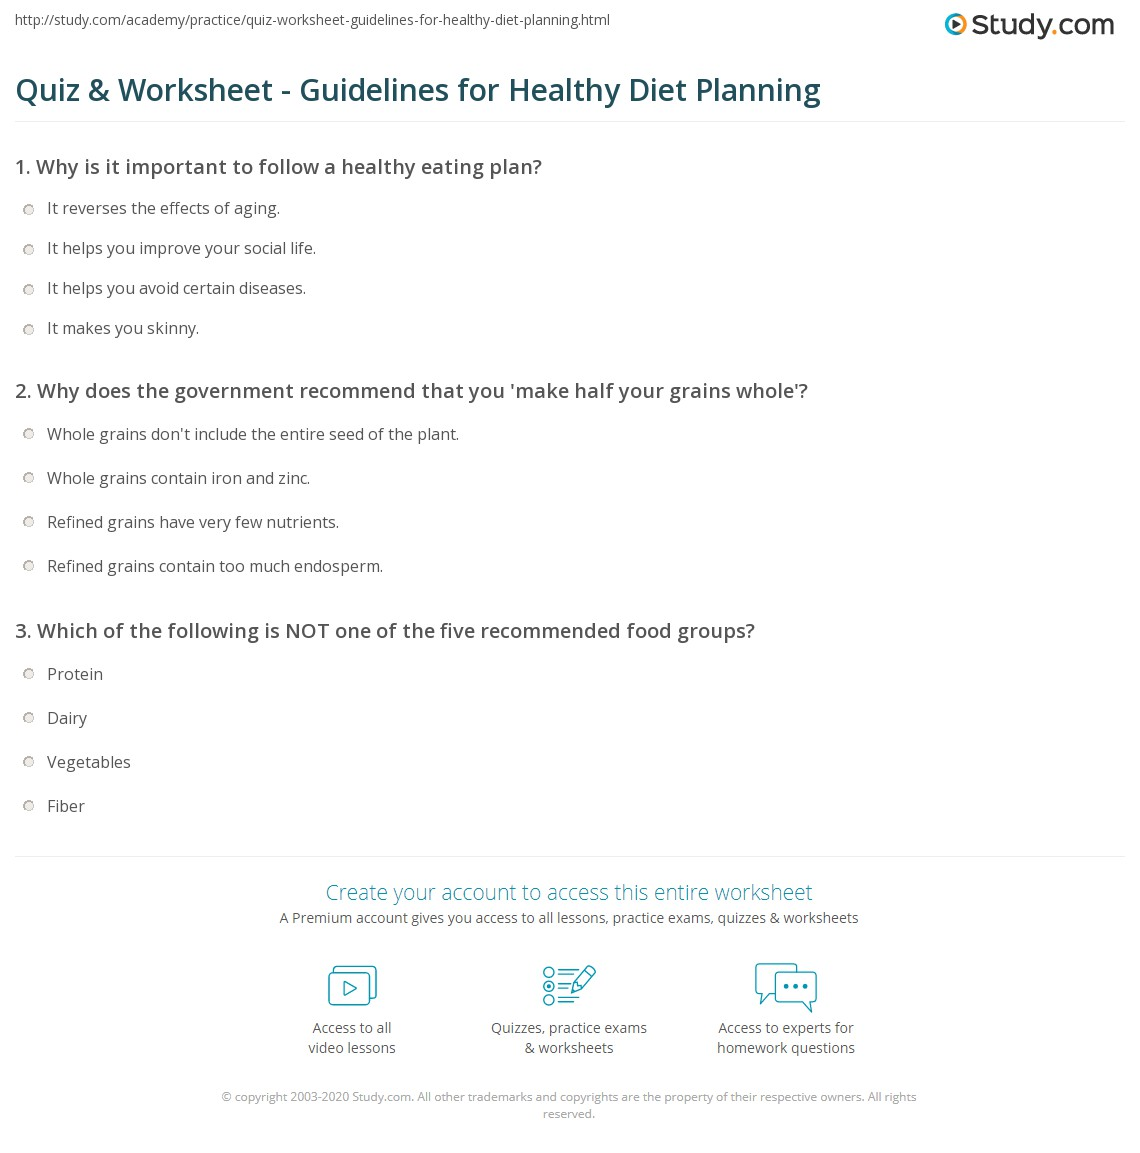 Quiz Worksheet Guidelines for Healthy Diet Planning – Healthy Eating Worksheets